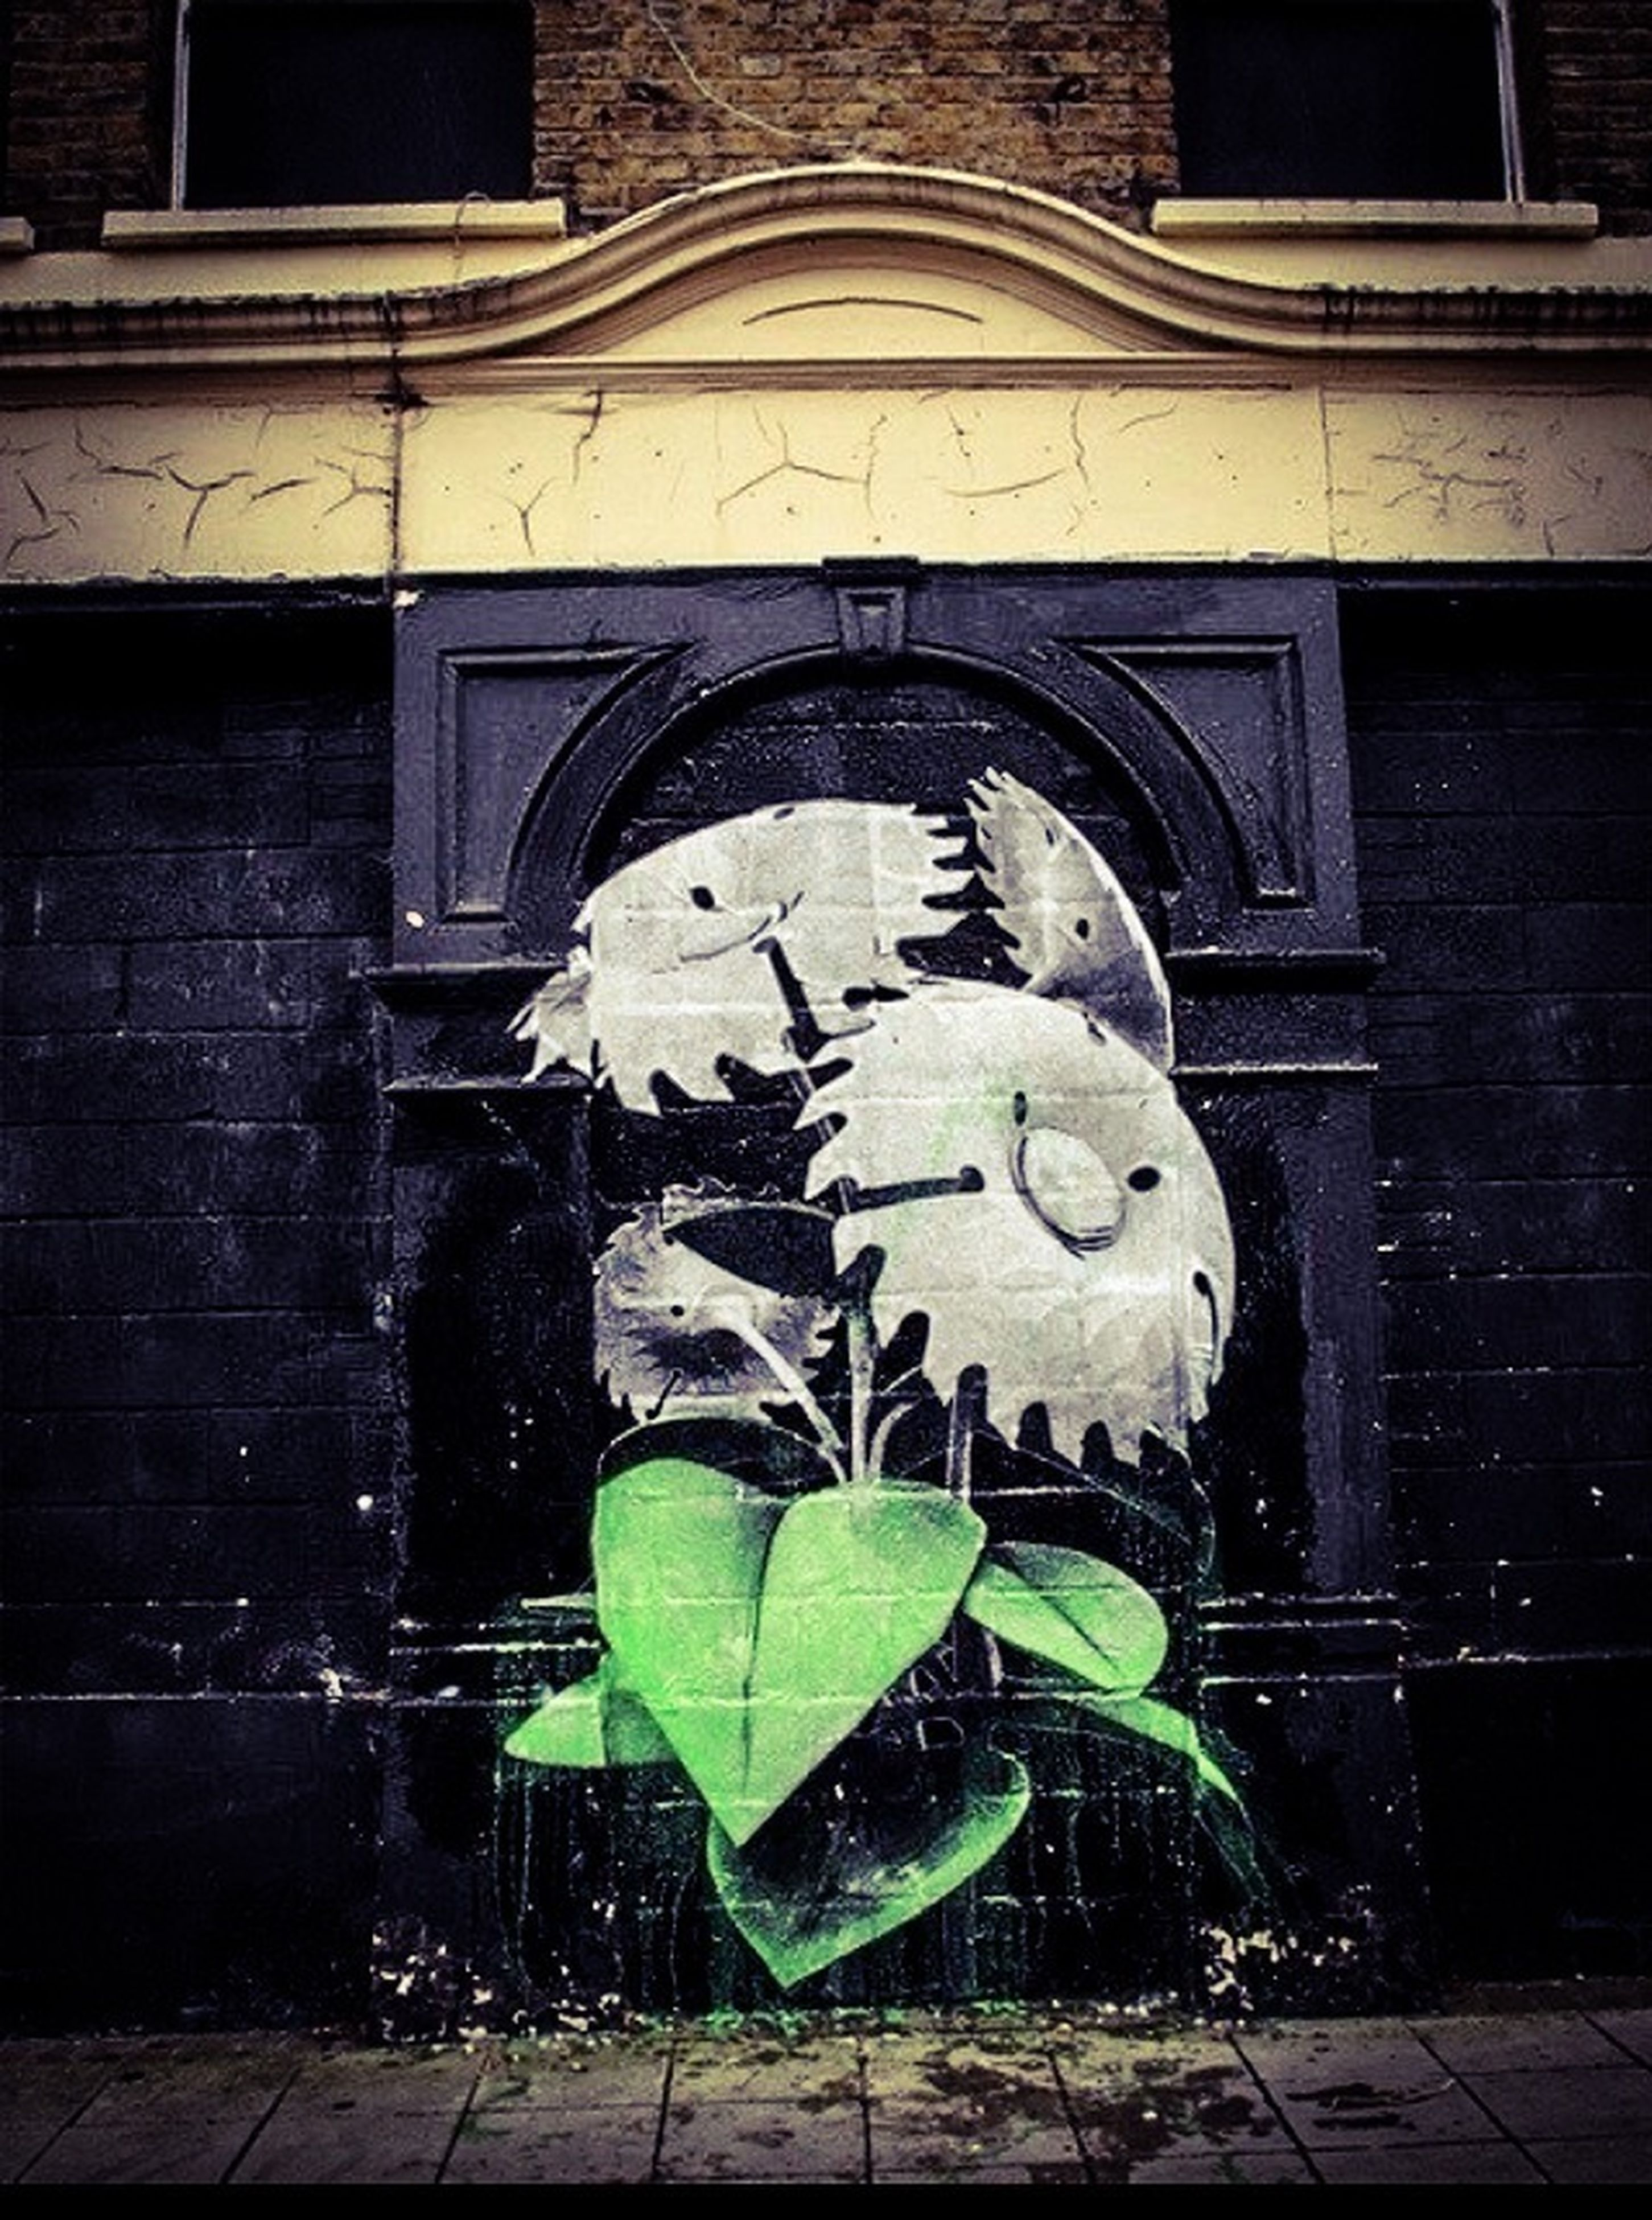 human representation, art and craft, art, creativity, built structure, building exterior, architecture, statue, sculpture, wall - building feature, brick wall, animal representation, graffiti, plant, outdoors, day, wall, window